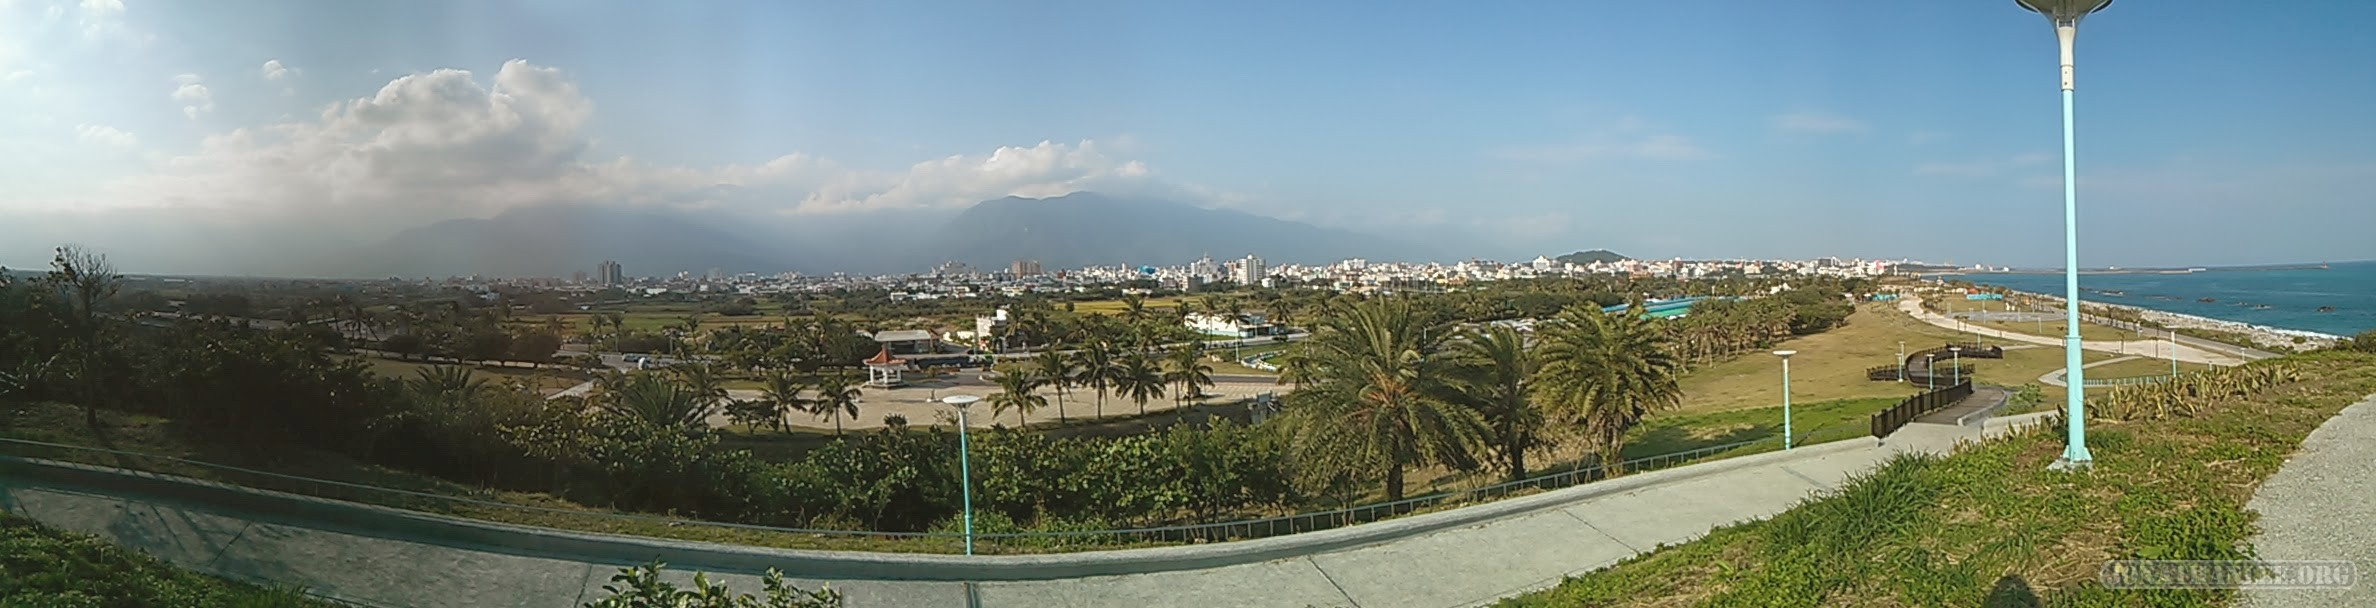 Hualien - city panorama